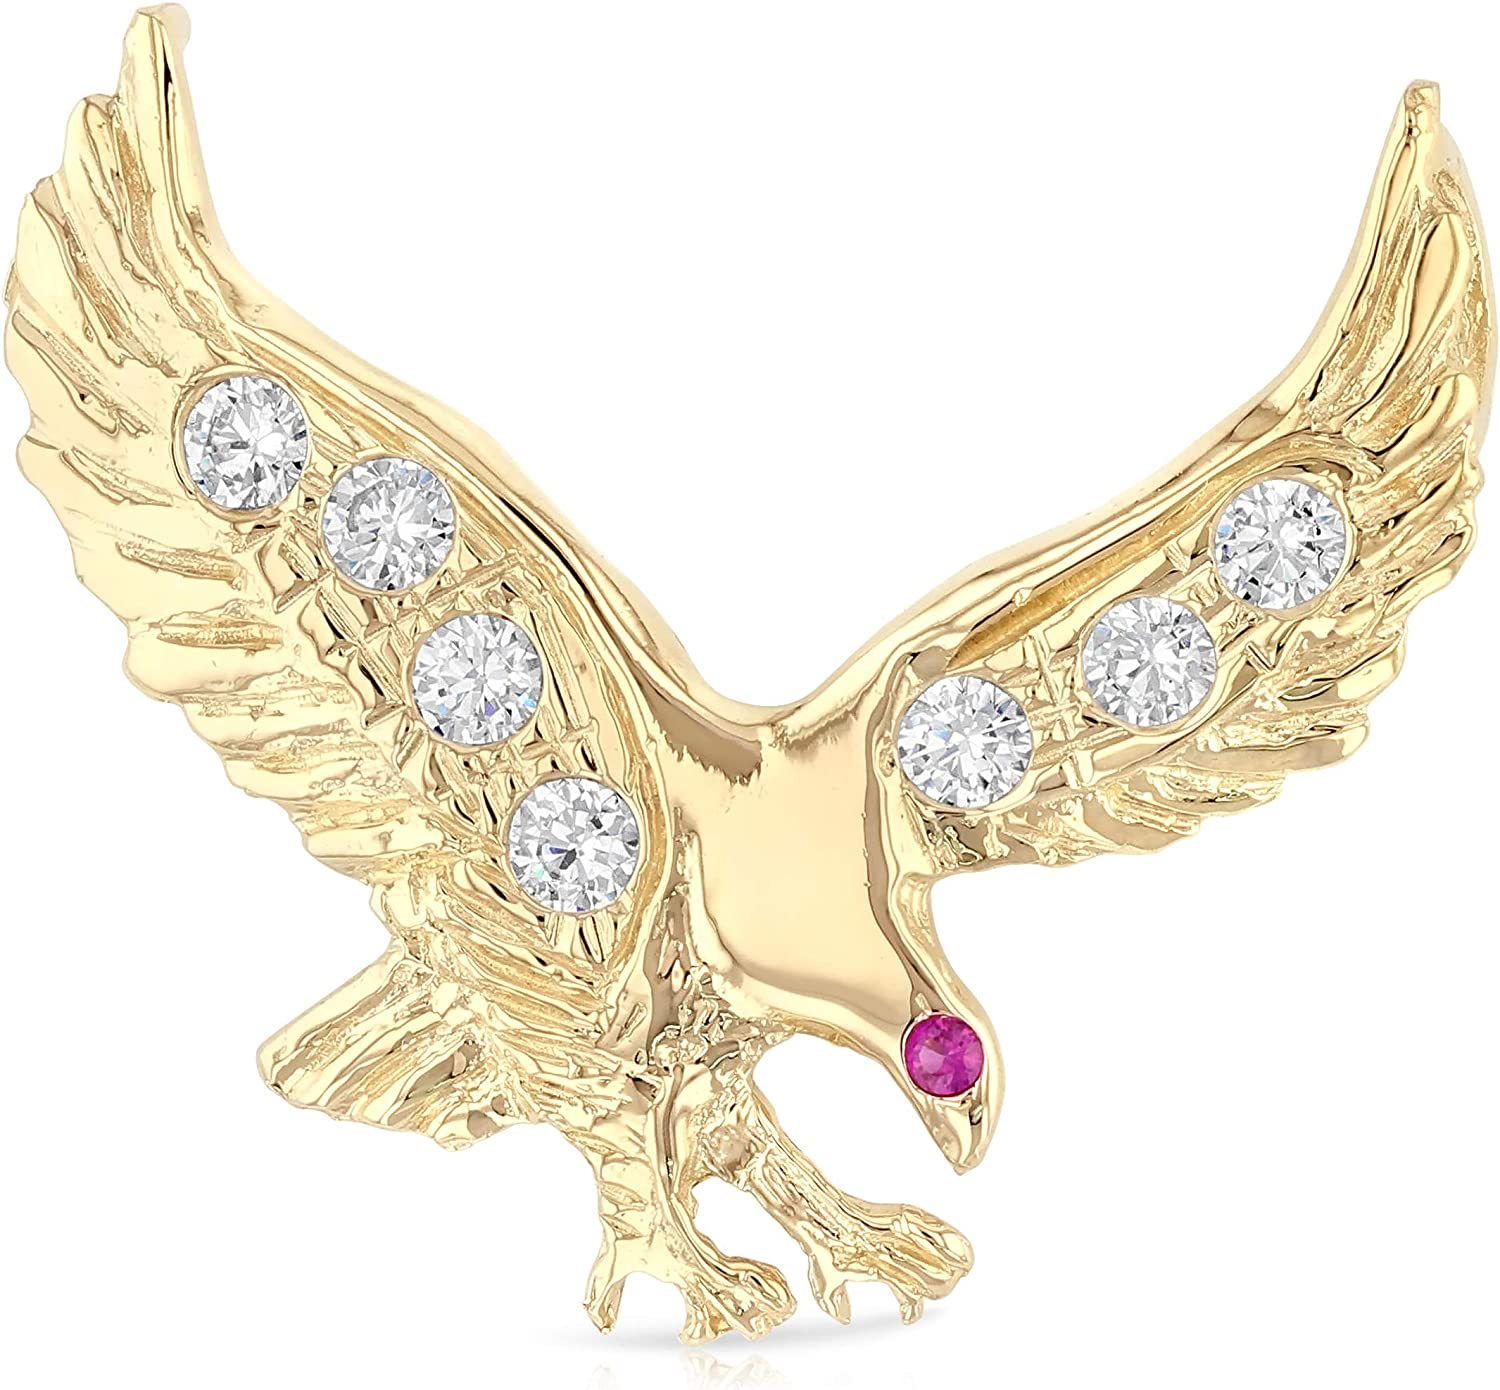 14K Two Tone Gold Cubic Zirconia CZ Eagle Charm Pendant For Necklace or Chain